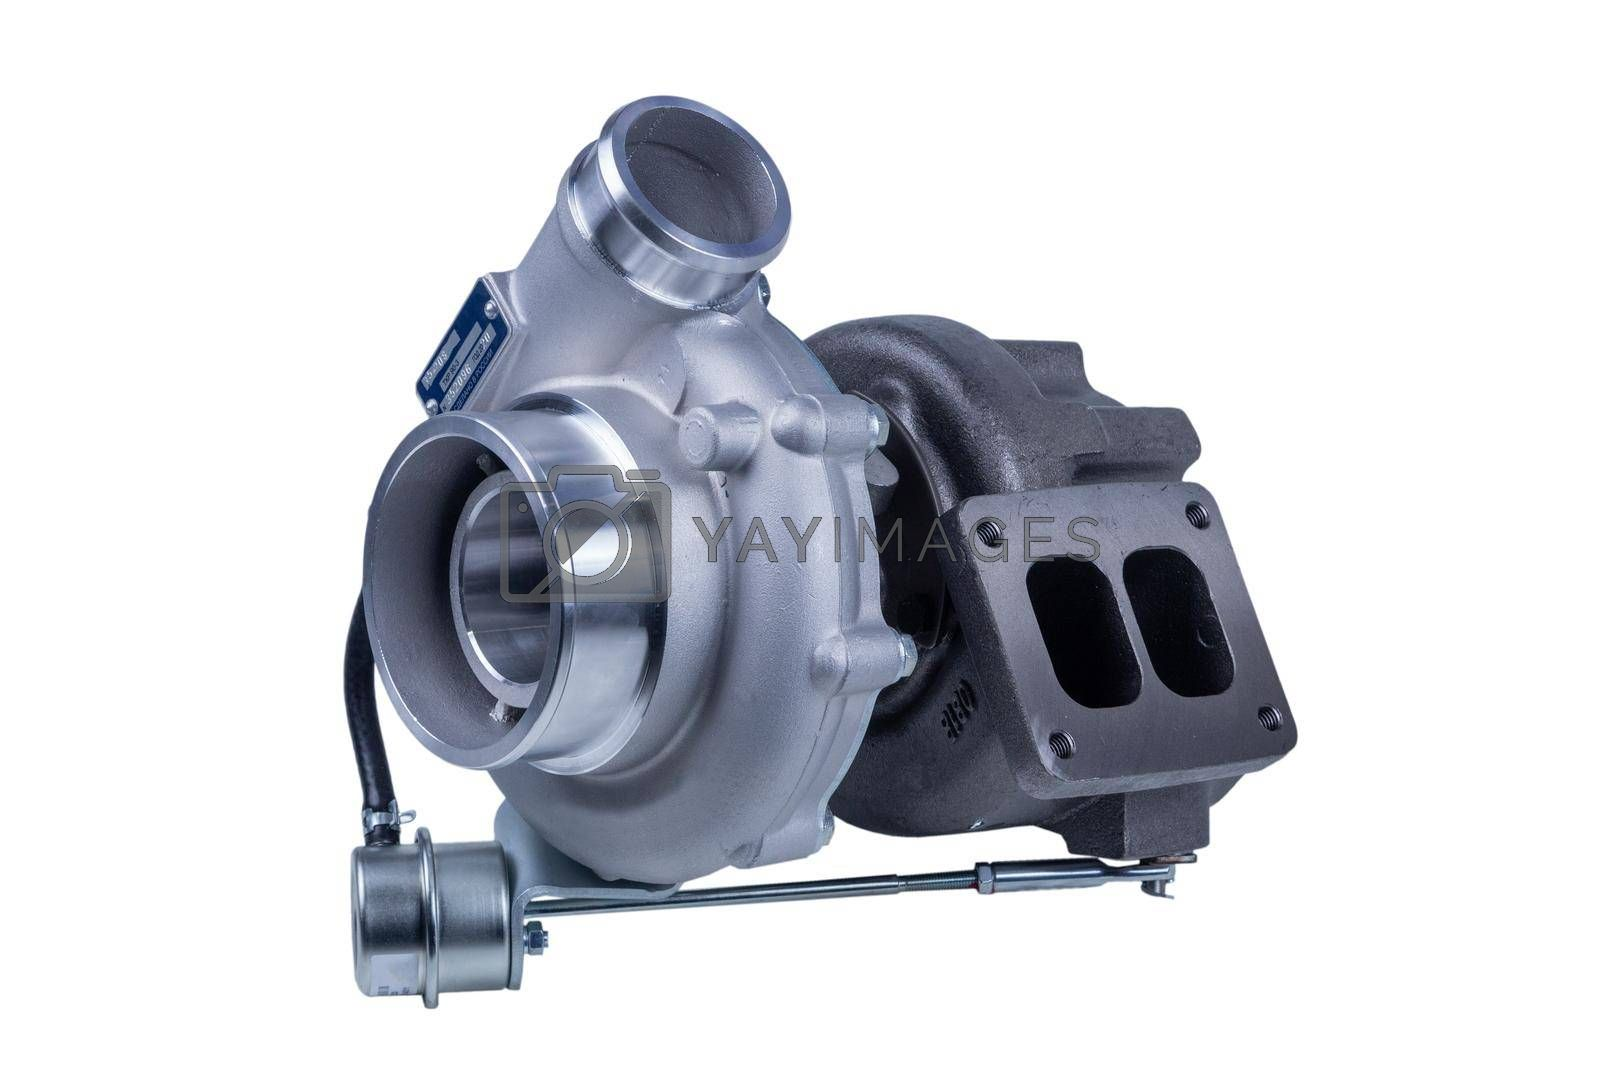 Royalty free image of new modern turbocharger of the Russian truck, isolated on a white background. turbocharger to increase the power of the car engine. by forester